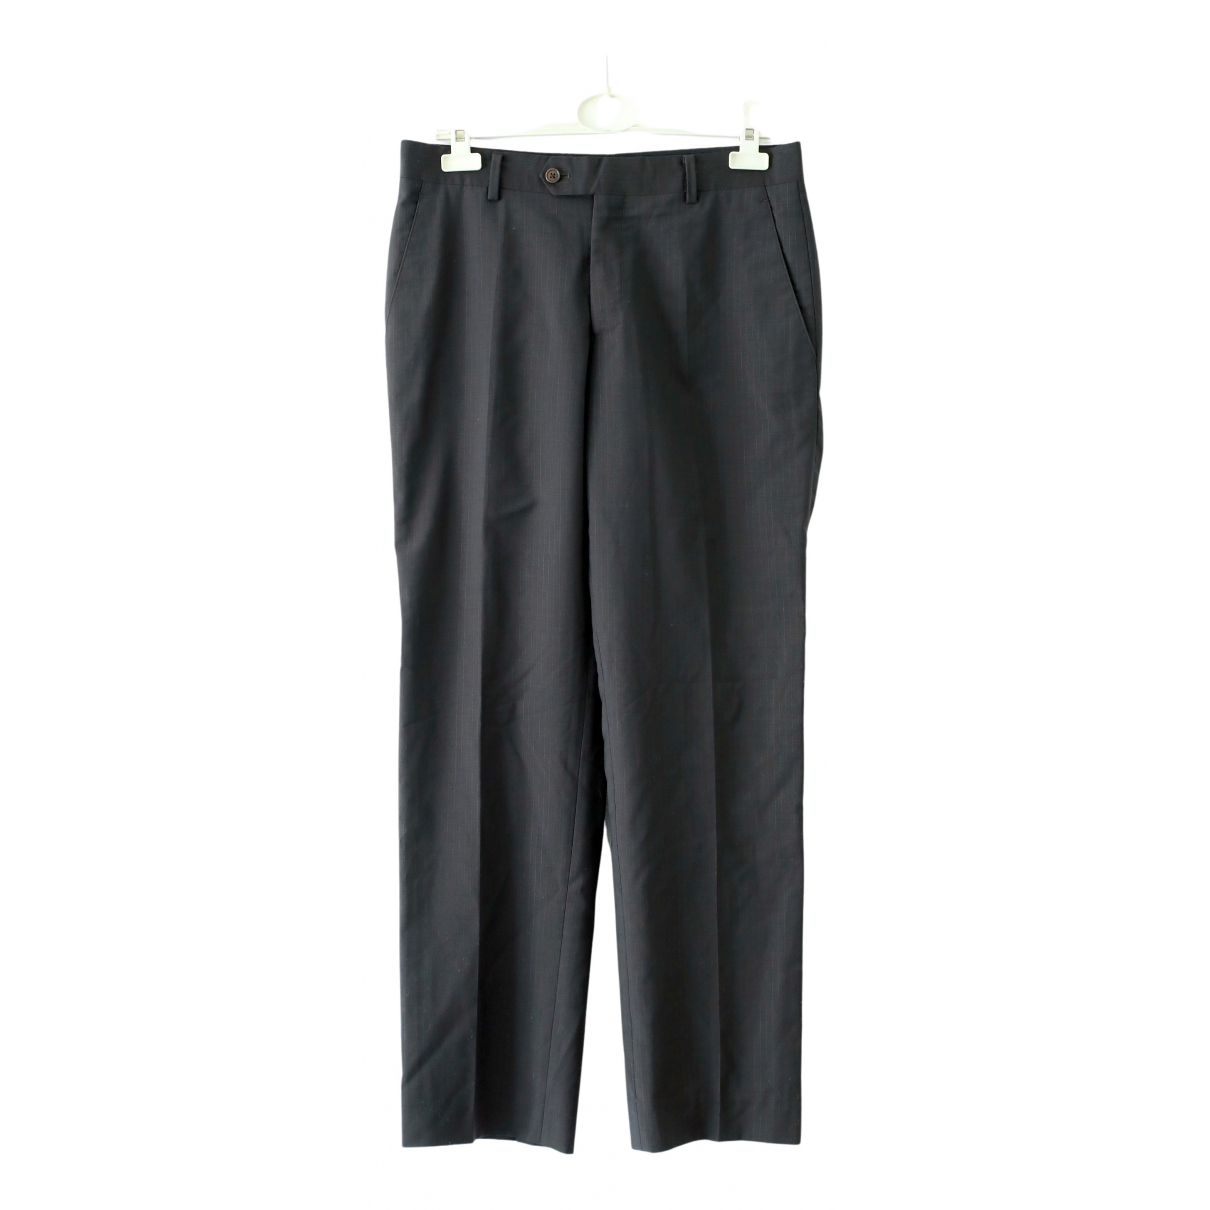 Balmain N Anthracite Wool Trousers for Women 40 FR